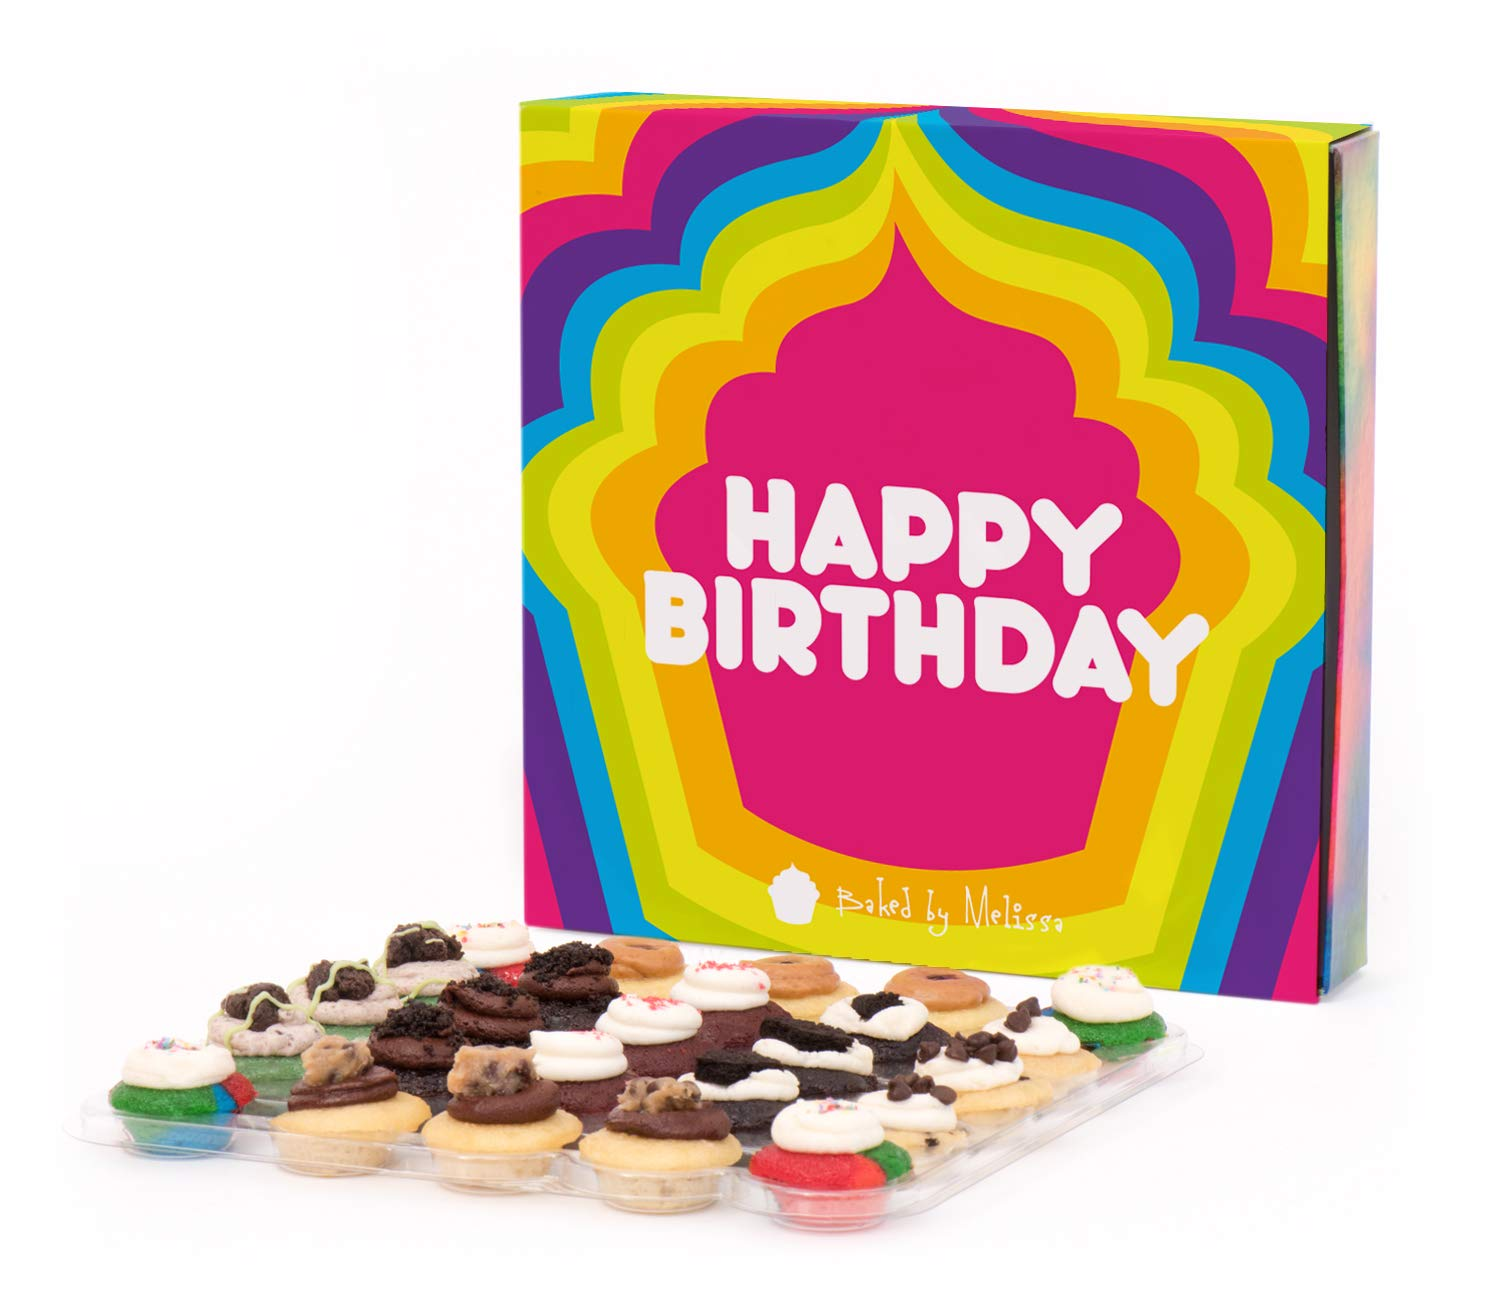 Baked by Melissa Happy Birthday 25 Assorted Bite-Size Cupcakes Gift Box (The O.M.G.F. (Gluten-Free)) by Baked by Melissa